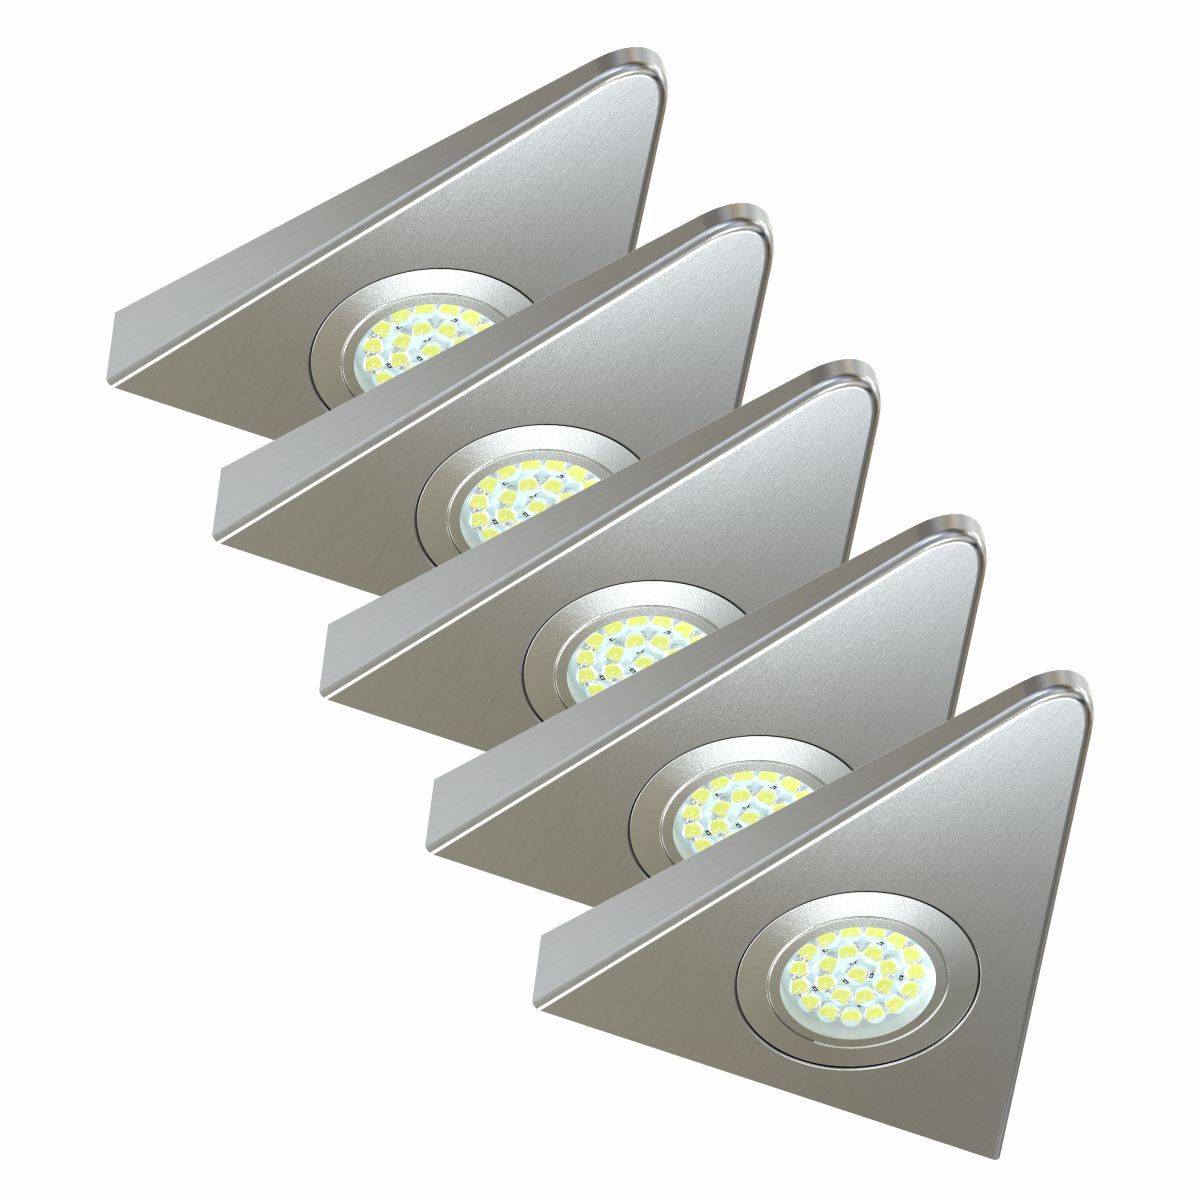 Simple Lighting Pack of 5, Super-slim, High Power, 1.8w LED, Triangle, Surface Mounted, Under Cabinet Lights